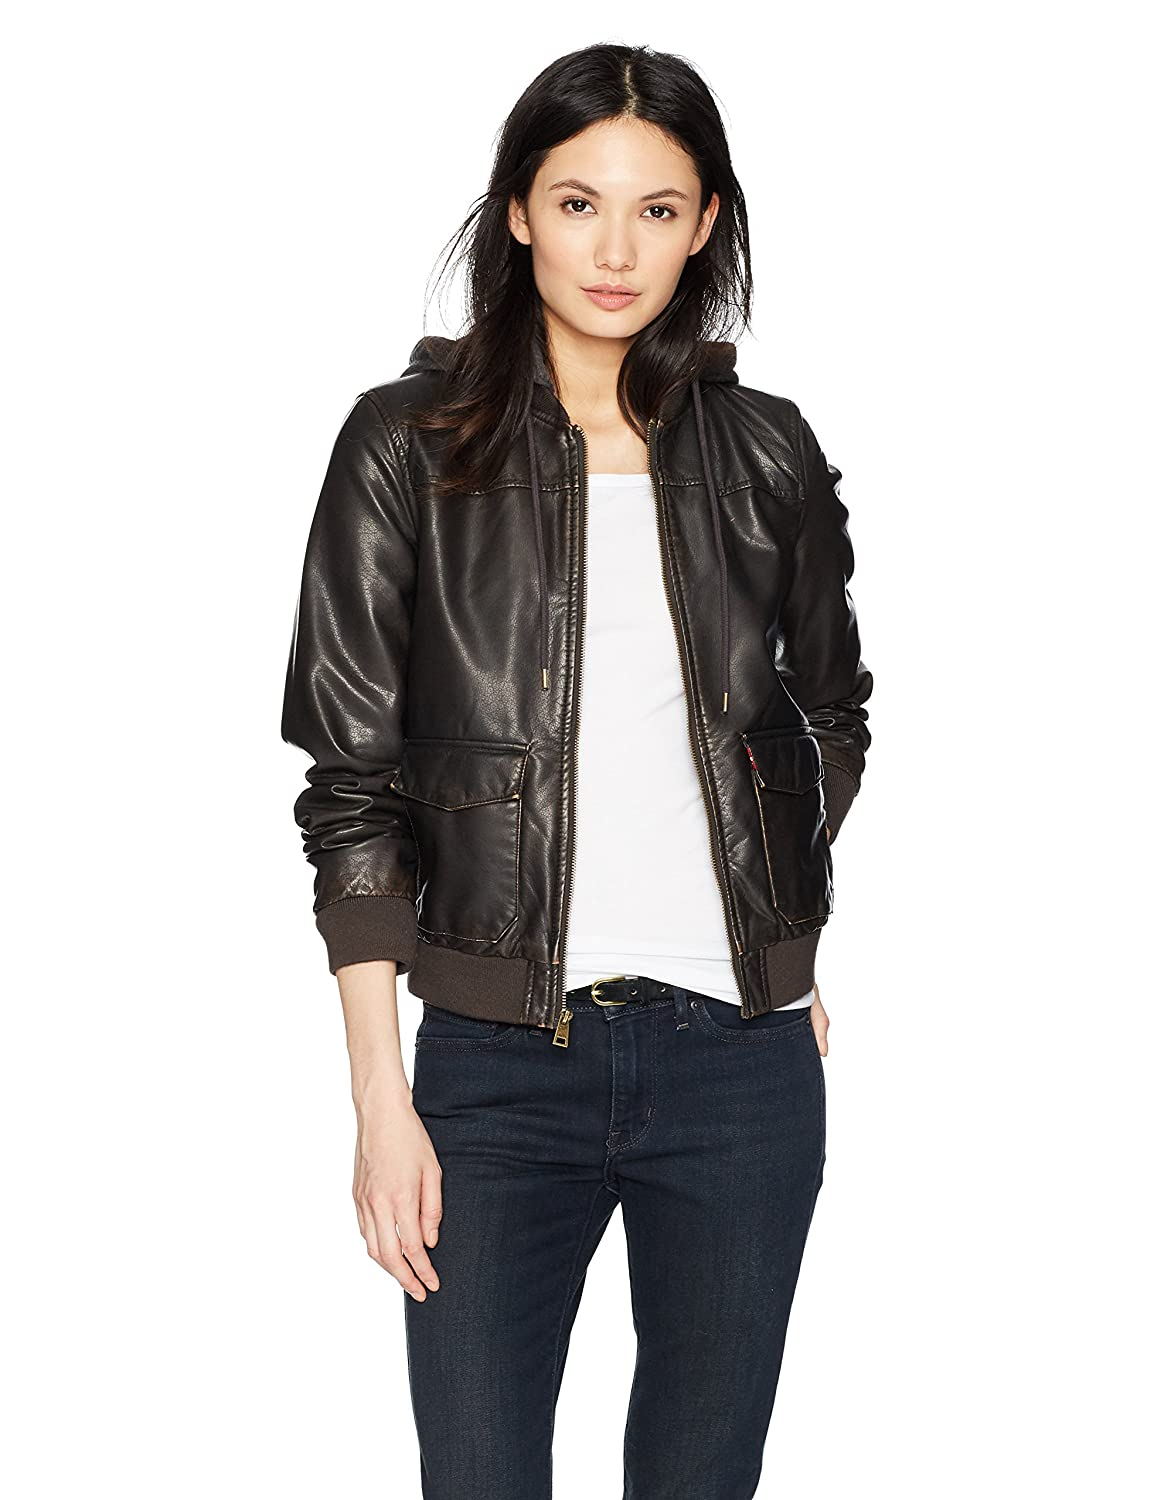 Vintage Coats & Jackets | Retro Coats and Jackets Levis Womens Two-Pocket Faux Leather Hooded Bomber Jacket With Sherpa $89.99 AT vintagedancer.com